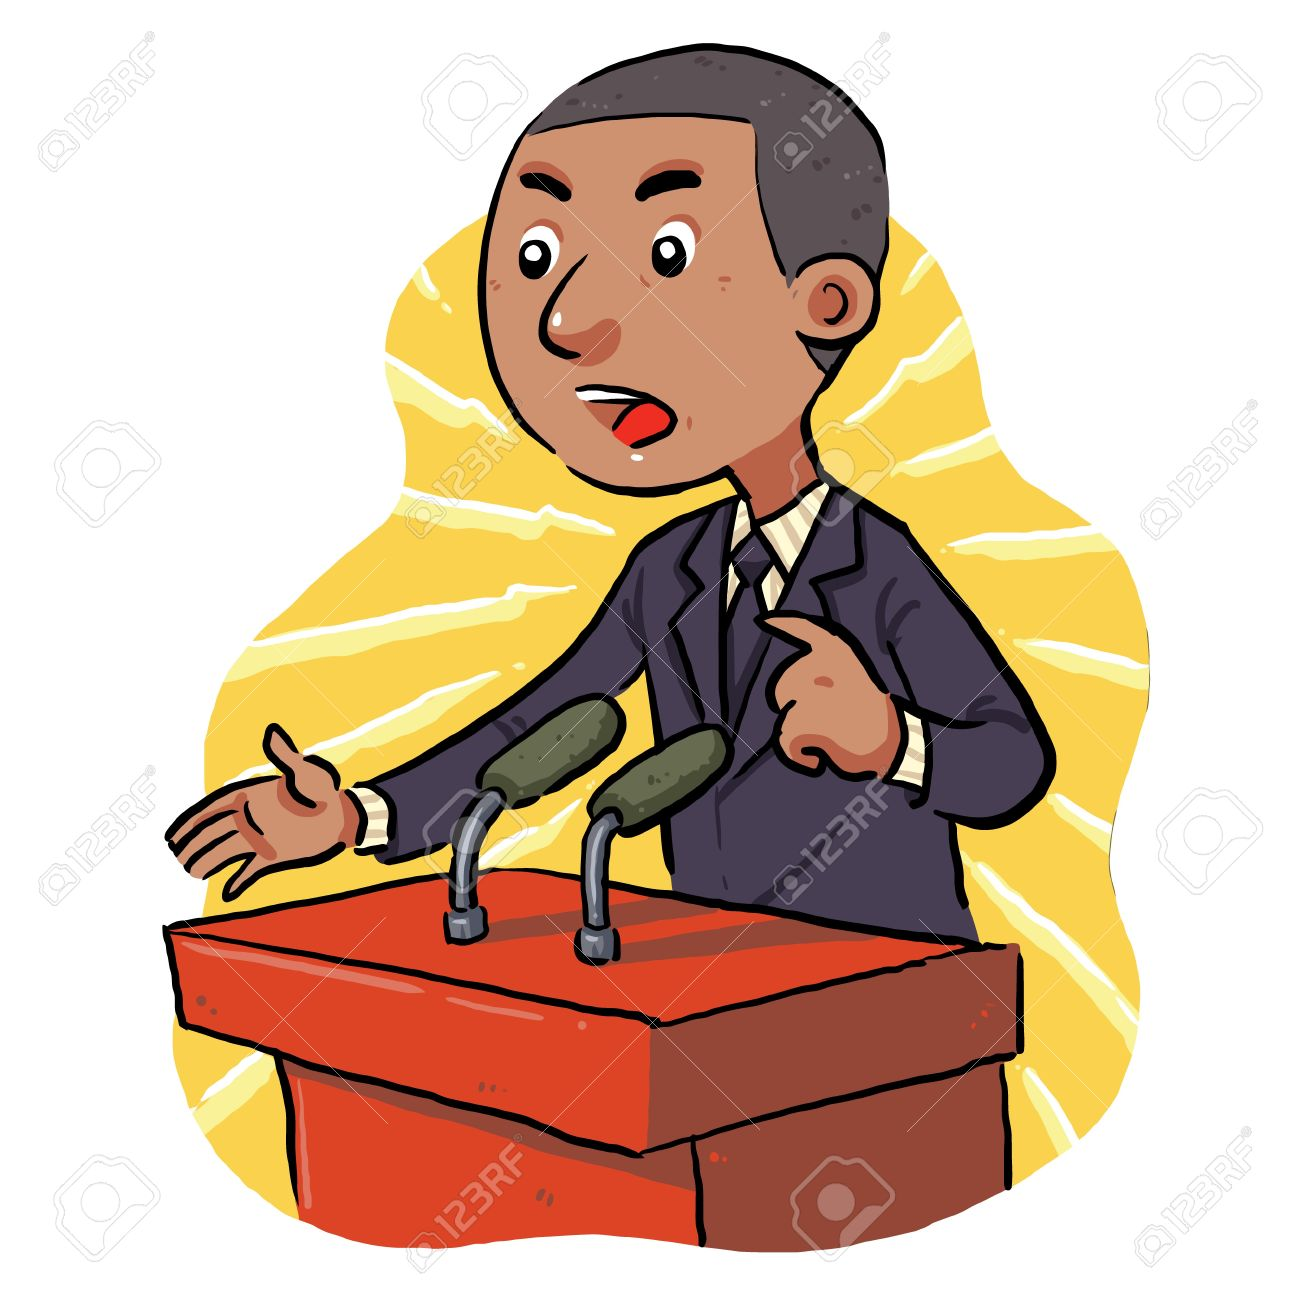 Politician speech in front of the audience Stock Vector - 20362219